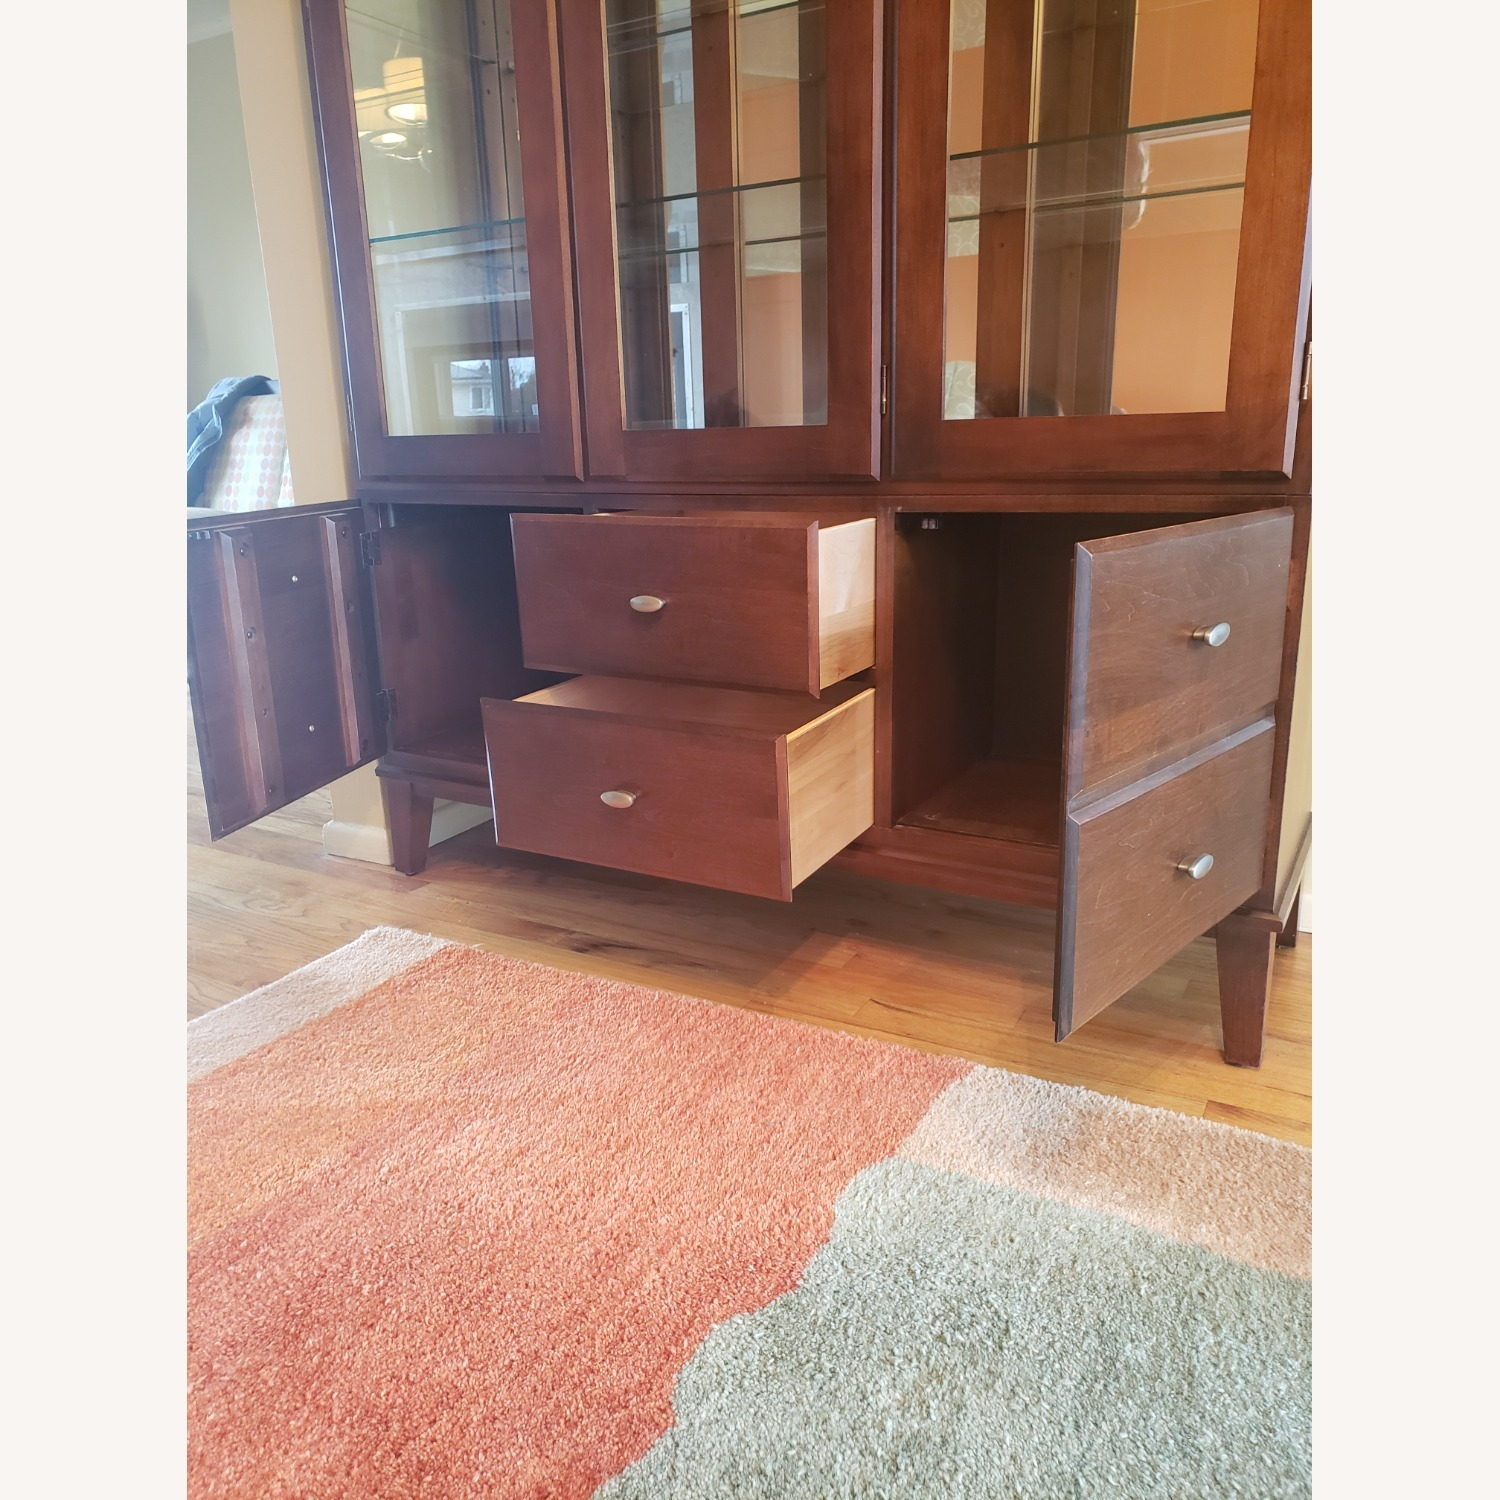 Ethan Allen Horizon China Cabinet with Lights - image-3